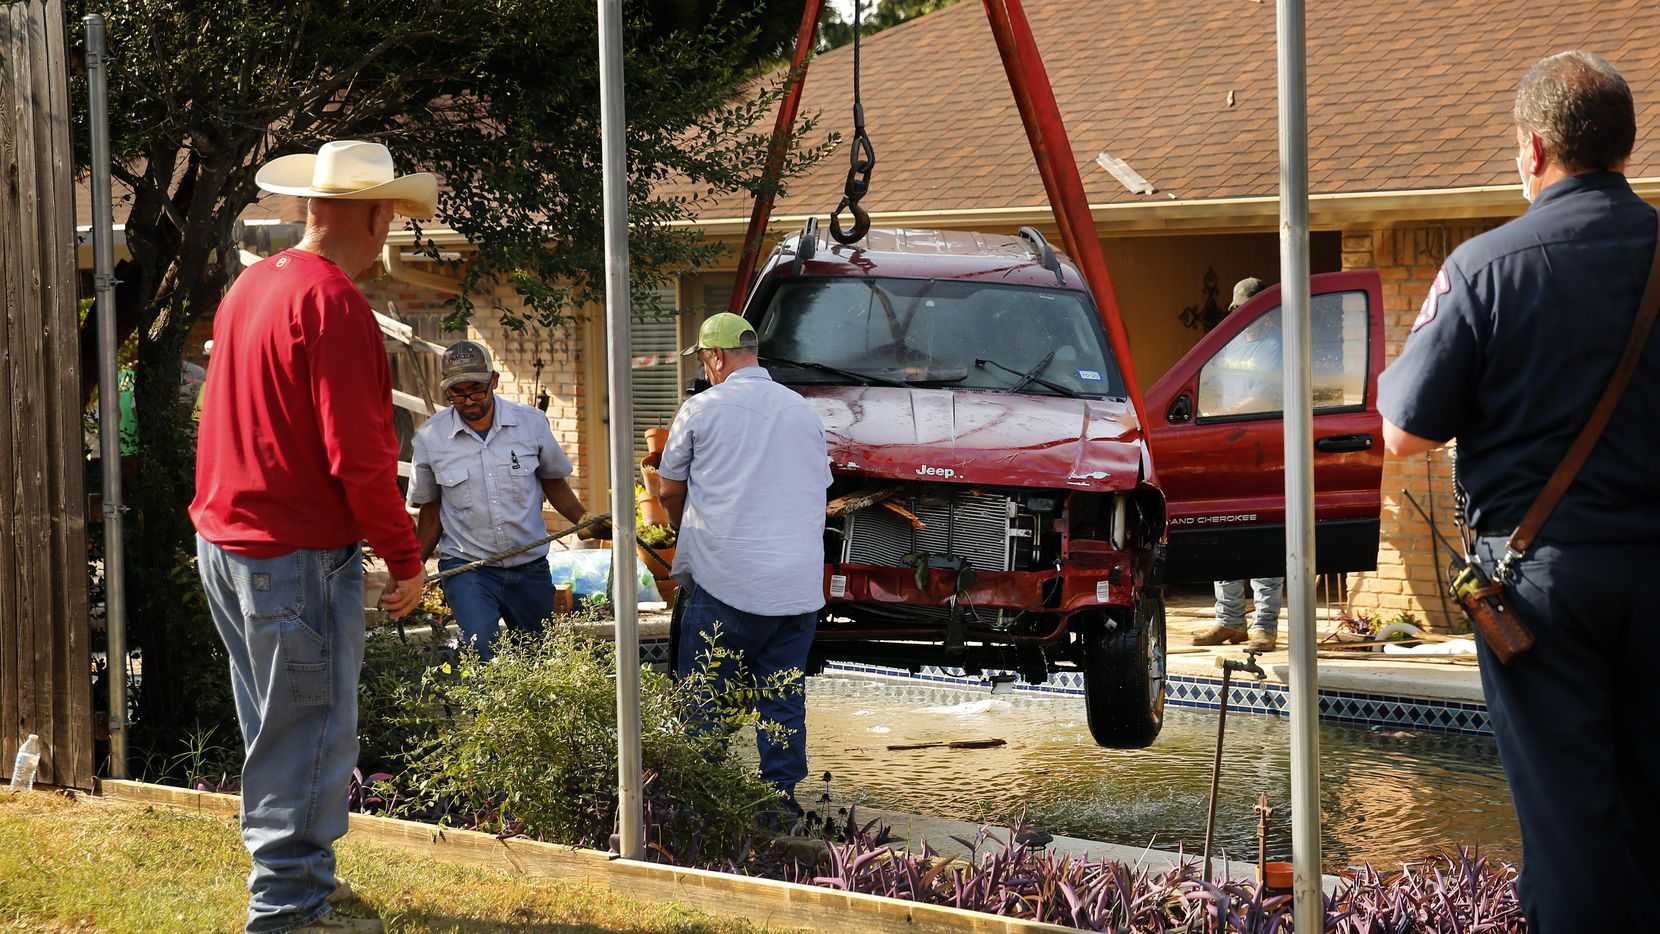 A wrecker crew uses a crane to lift a Jeep Grand Cherokee from a backyard pool on Clemson Drive in Arlington on Monday. The driver, who crashed through the fence on W. Beady Road, suffered minor injuries.